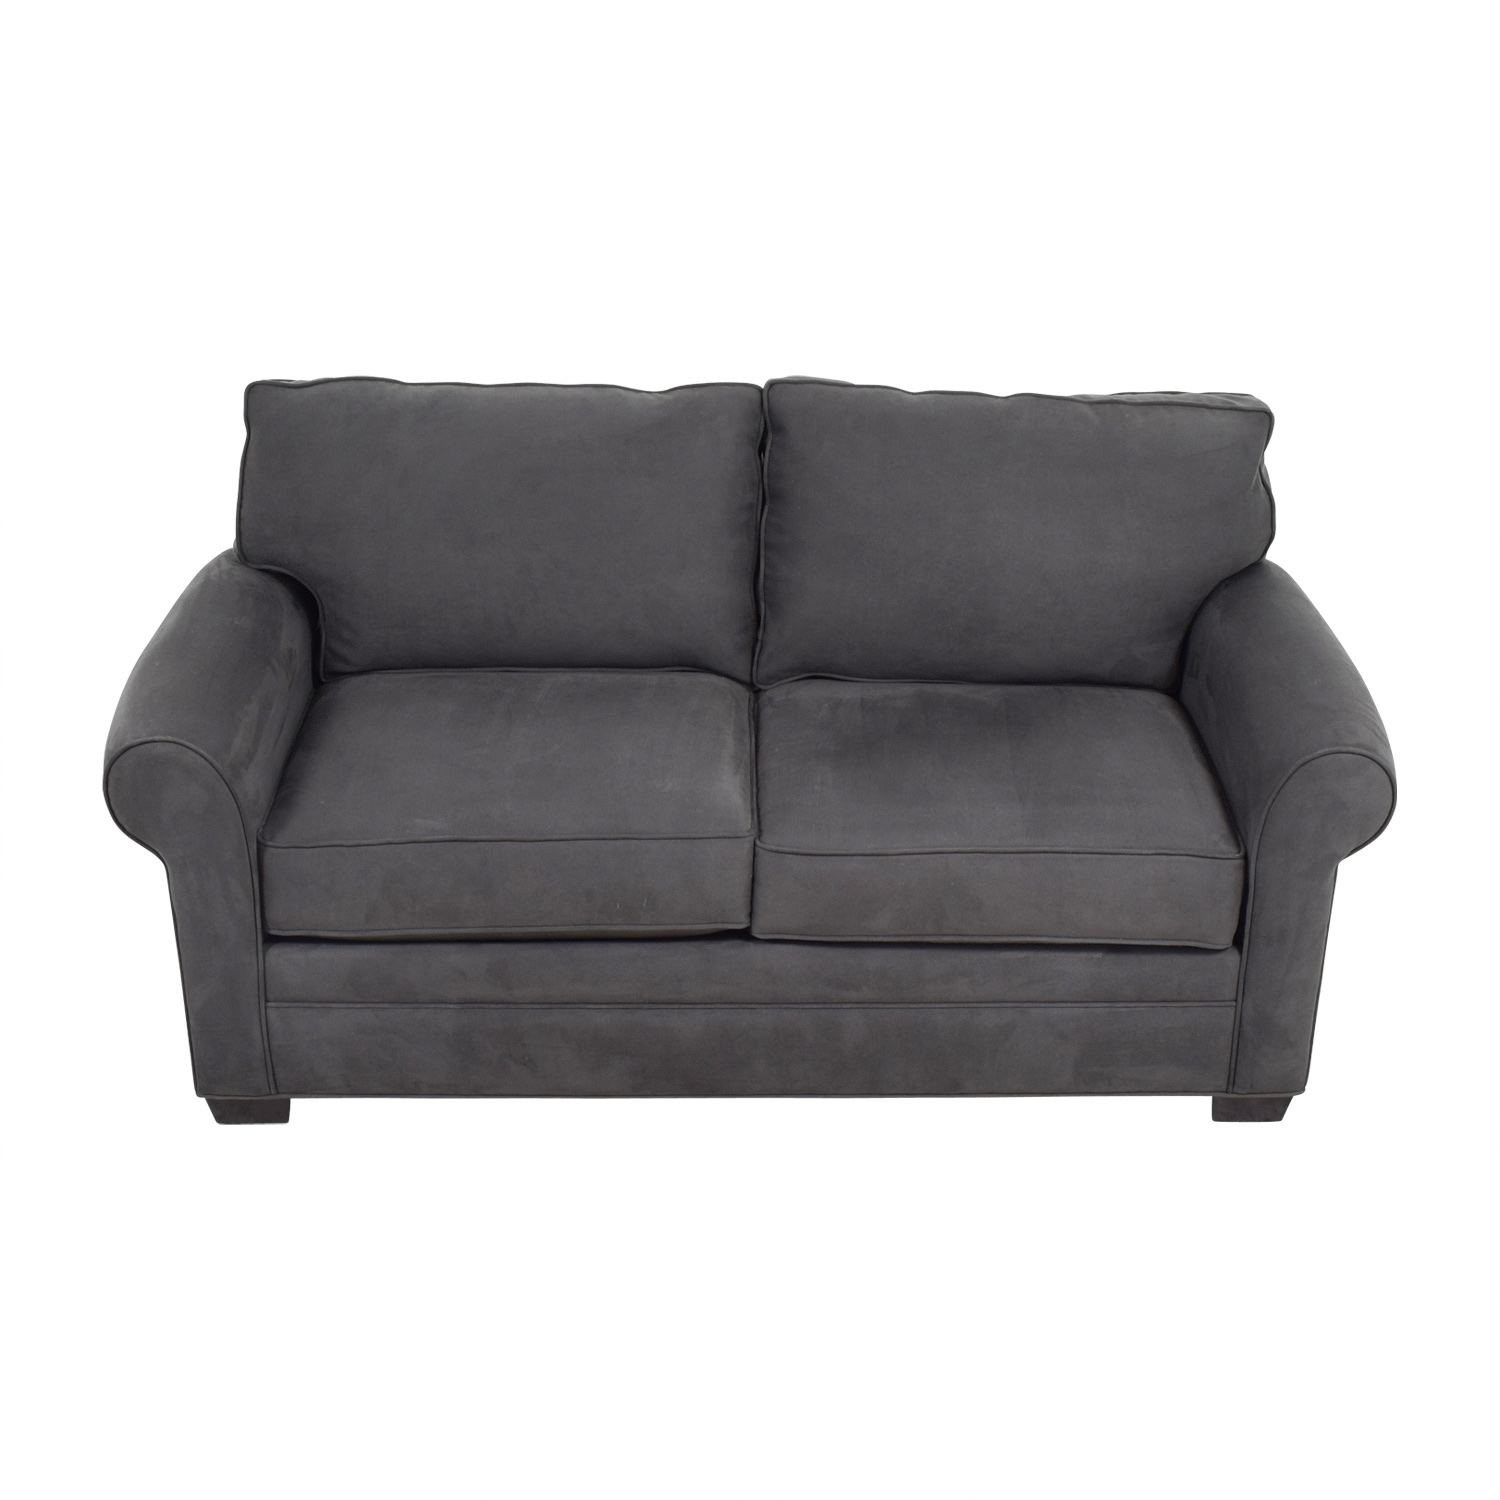 Raymour and Flanigan Raymour & Flanigan Glendora Grey Loveseat for sale